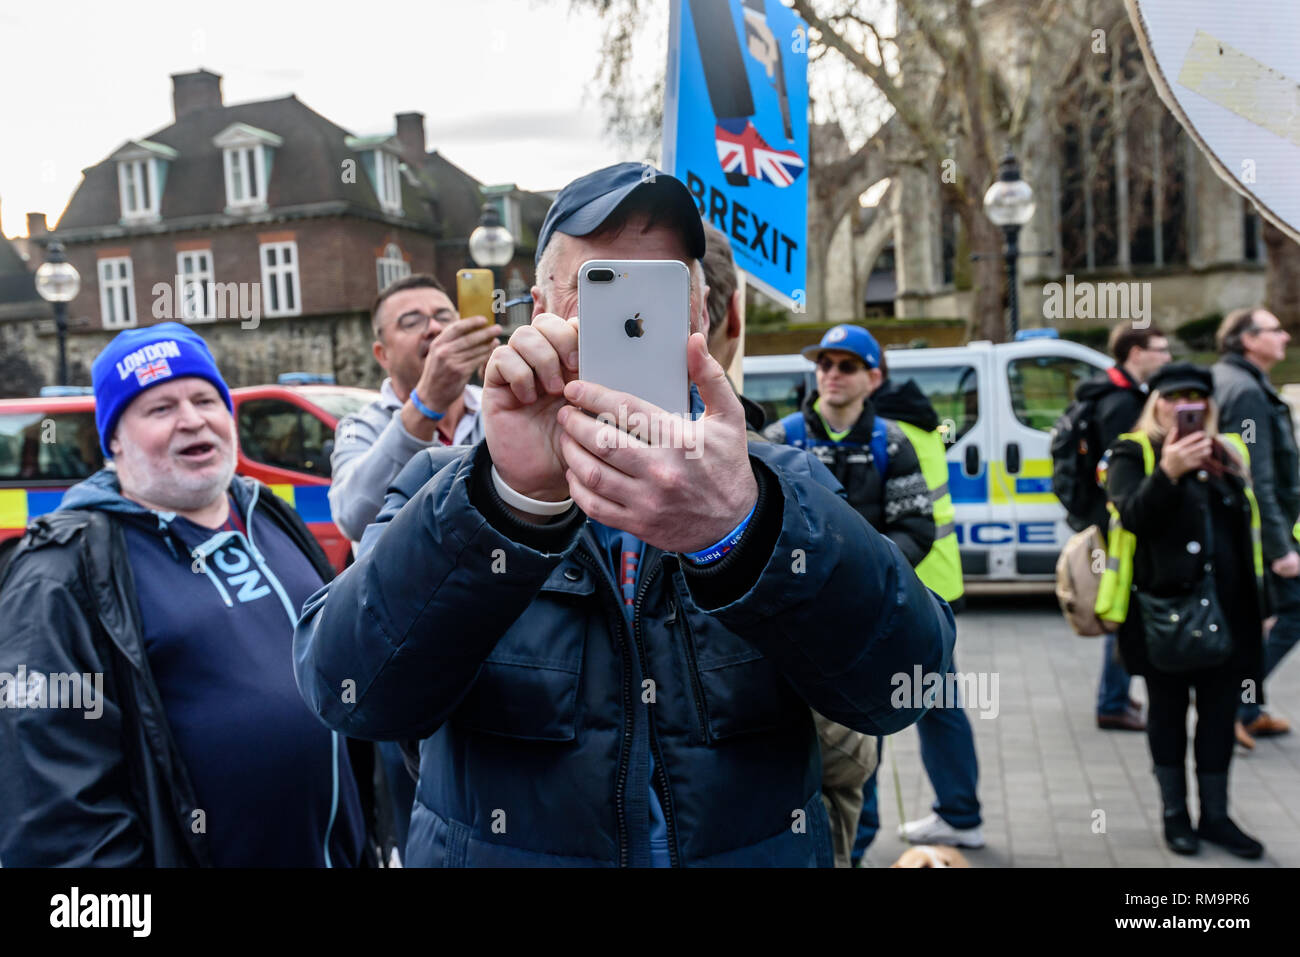 London, UK. 13th February 2019. One of the small group of extreme right Breixteers who come to harass Steven Bray and SODEM by following them around, shouting at them and recording video turns his phone camera to video me taking photographs. They complain at the police who try to keep the two groups apart accusing them of showing favouritsm by protecting the protesters.  Peter Marshall/Alamy Live News - Stock Image